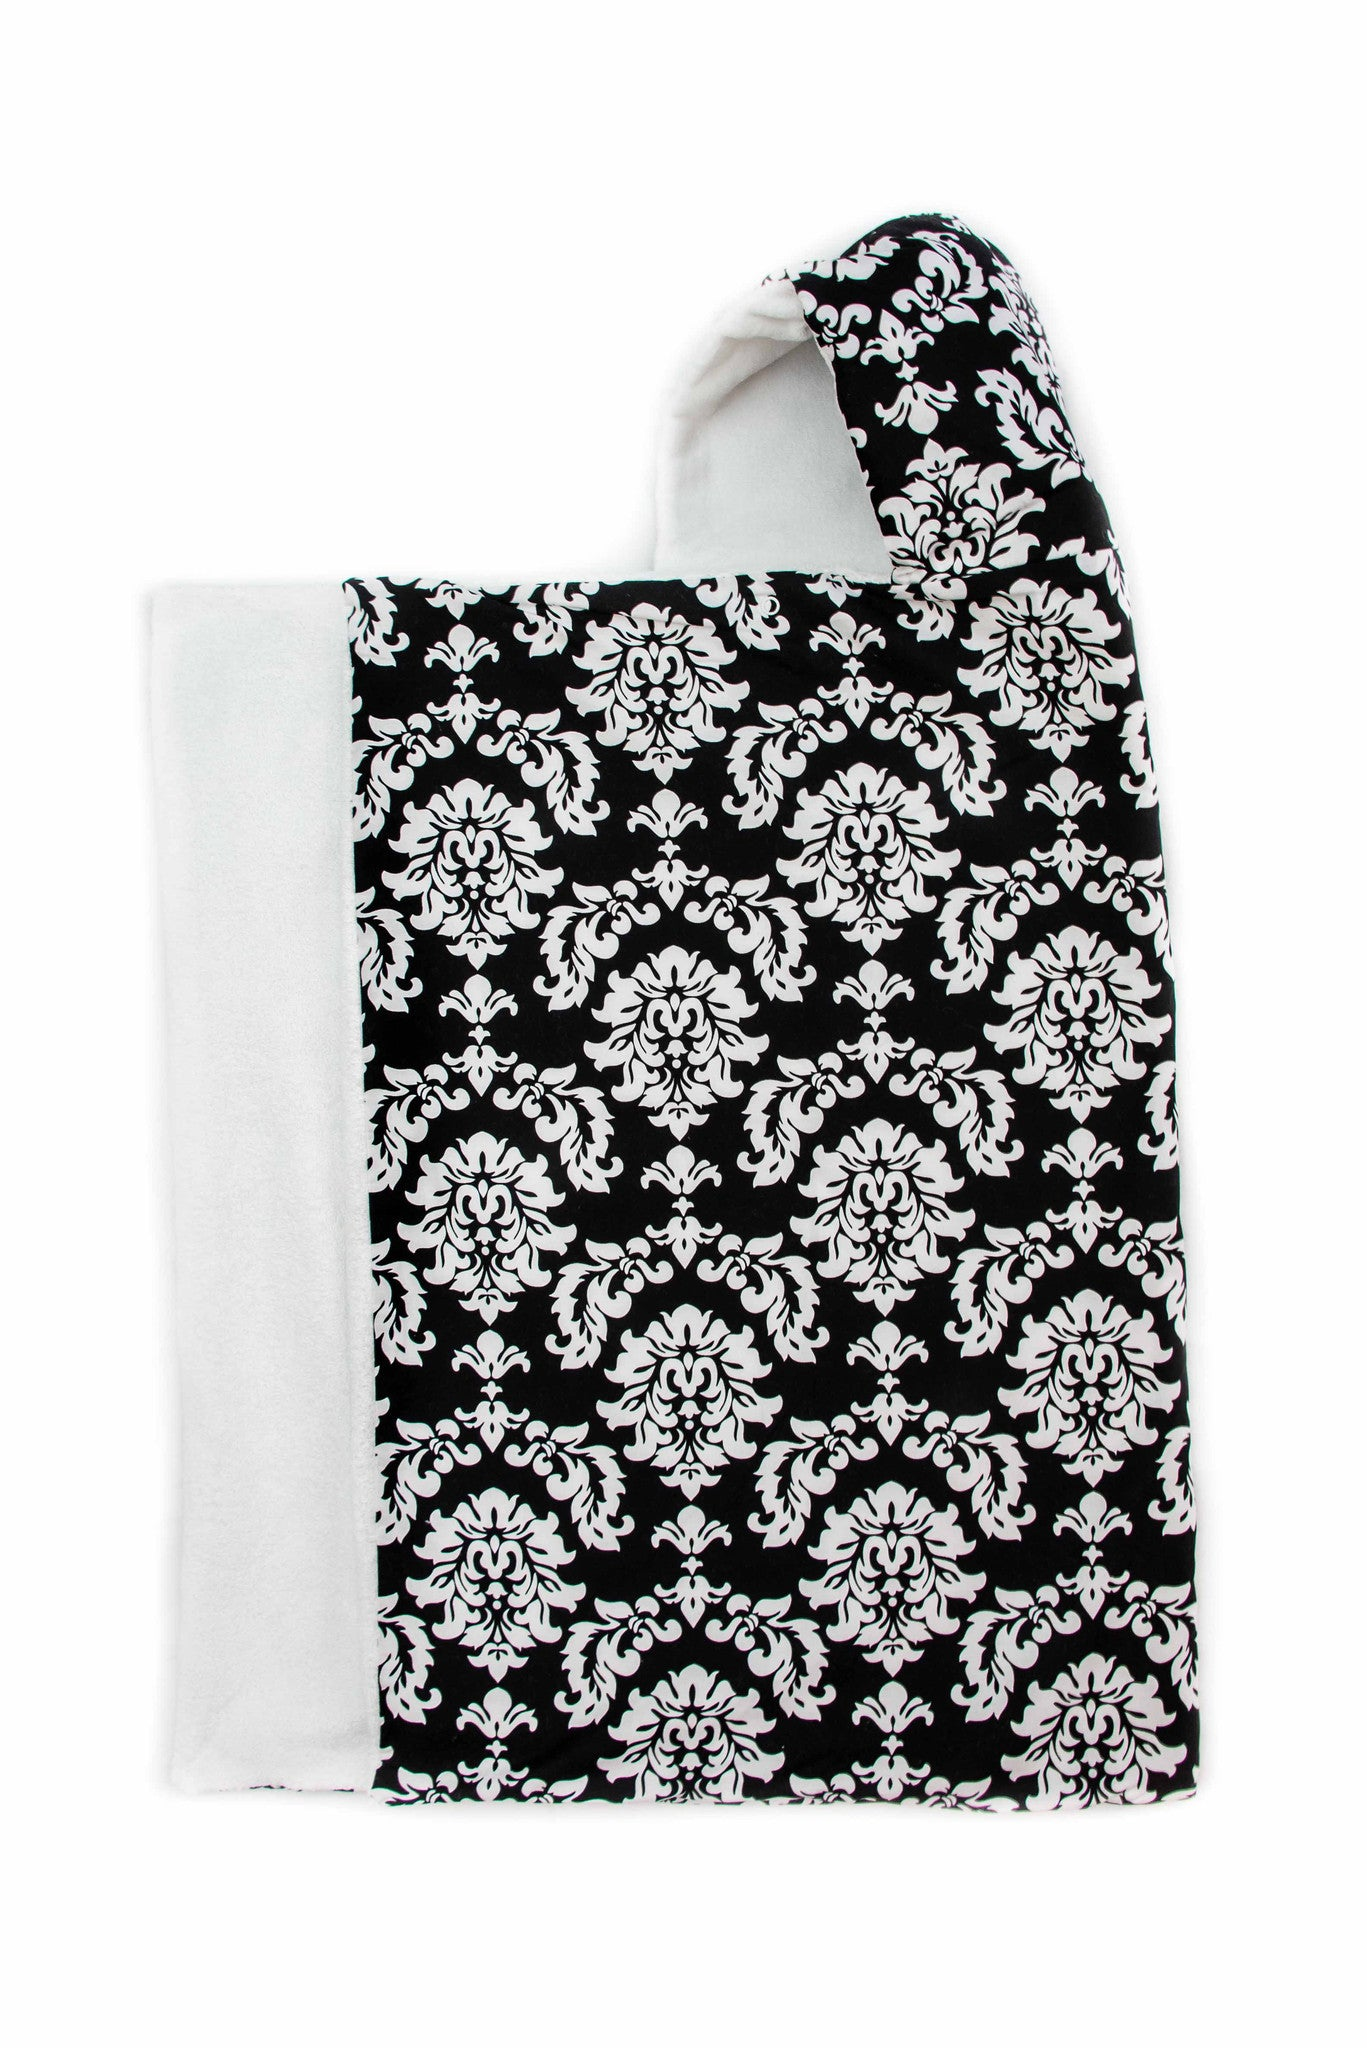 Damask Snap Hooded Towel